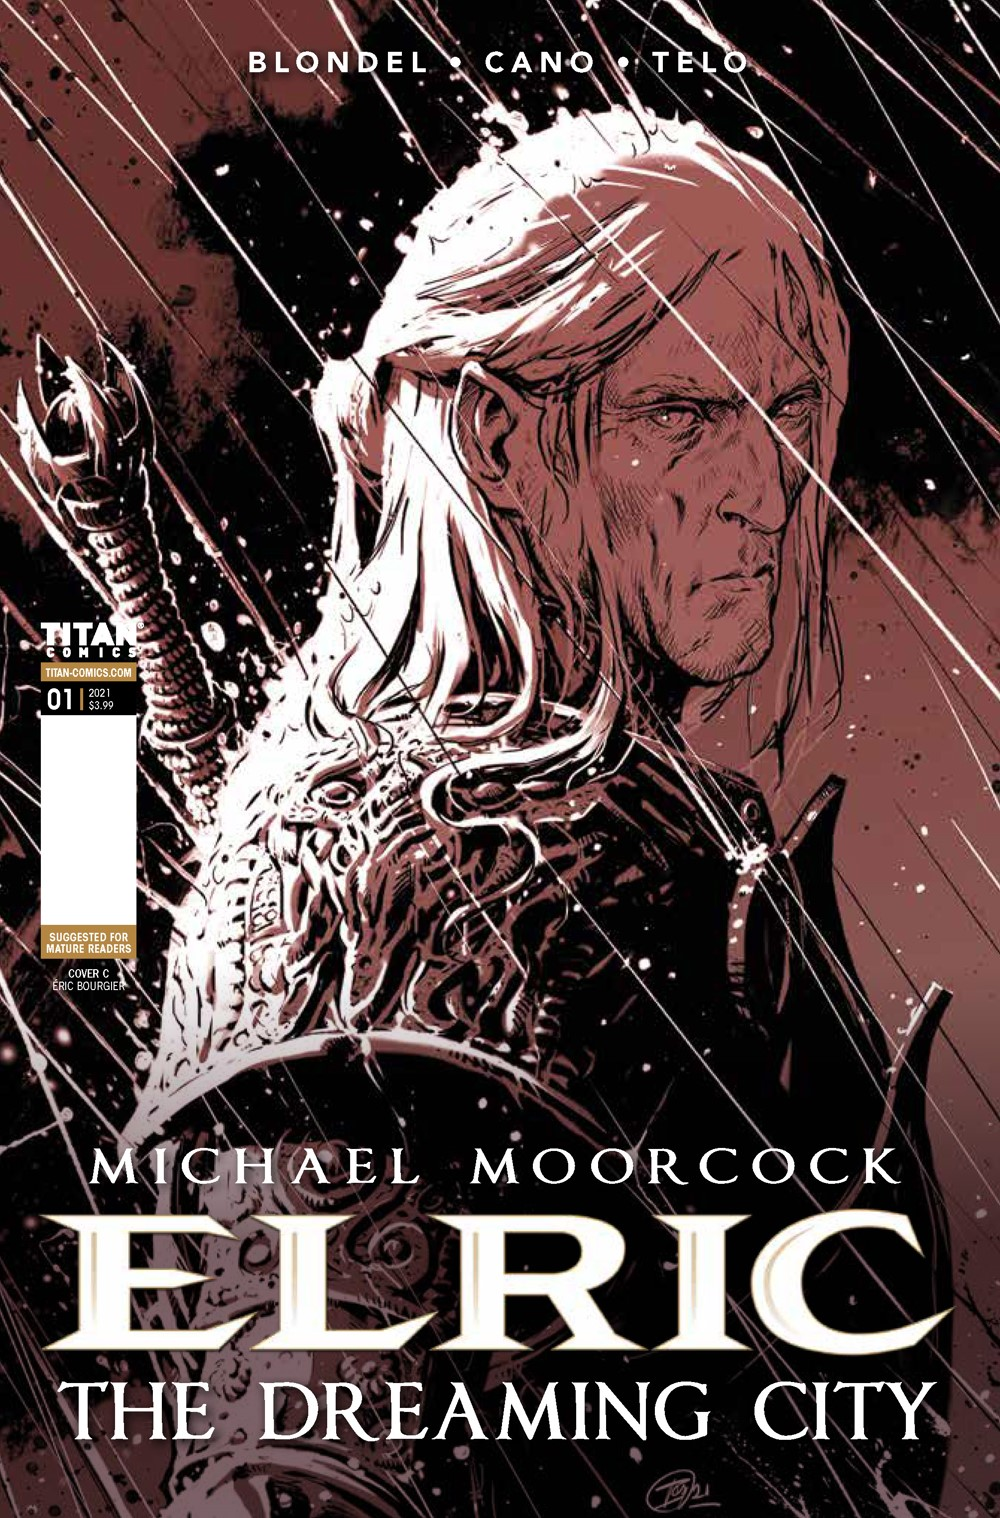 Elric_1_Cover_C ComicList Previews: ELRIC THE DREAMING CITY #1